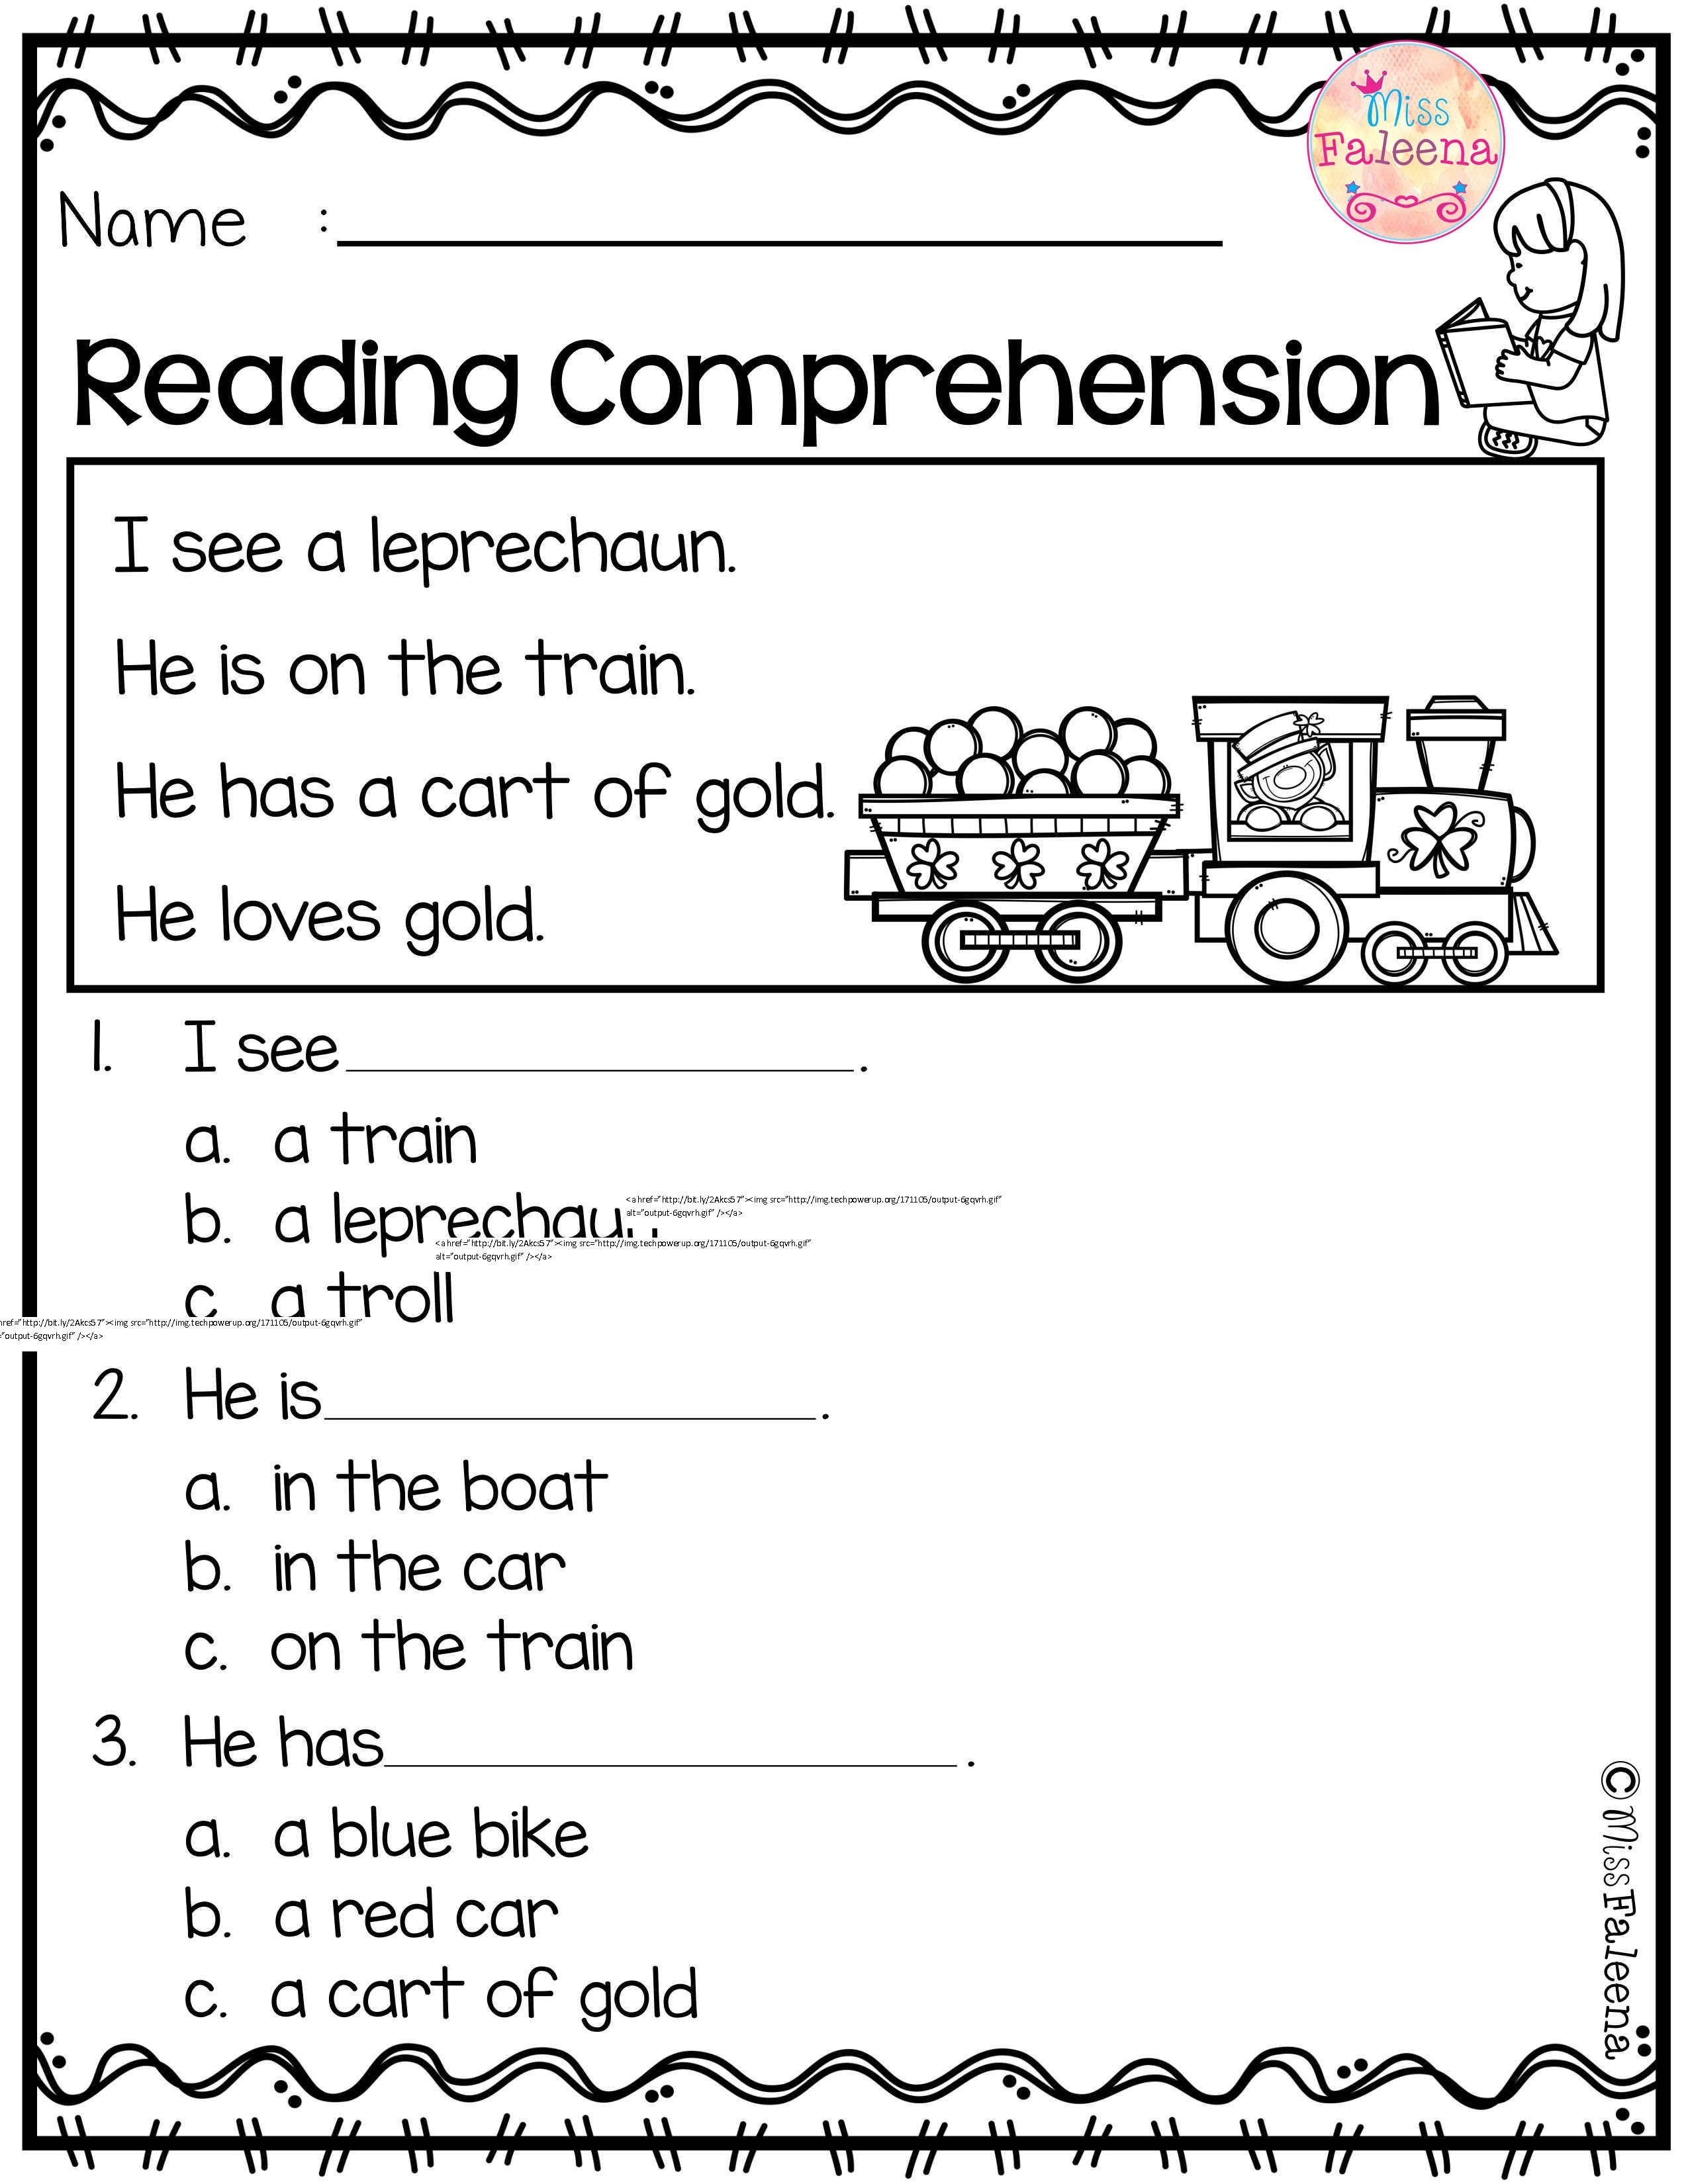 Comprehension Worksheets for Kindergarten March Reading Prehension